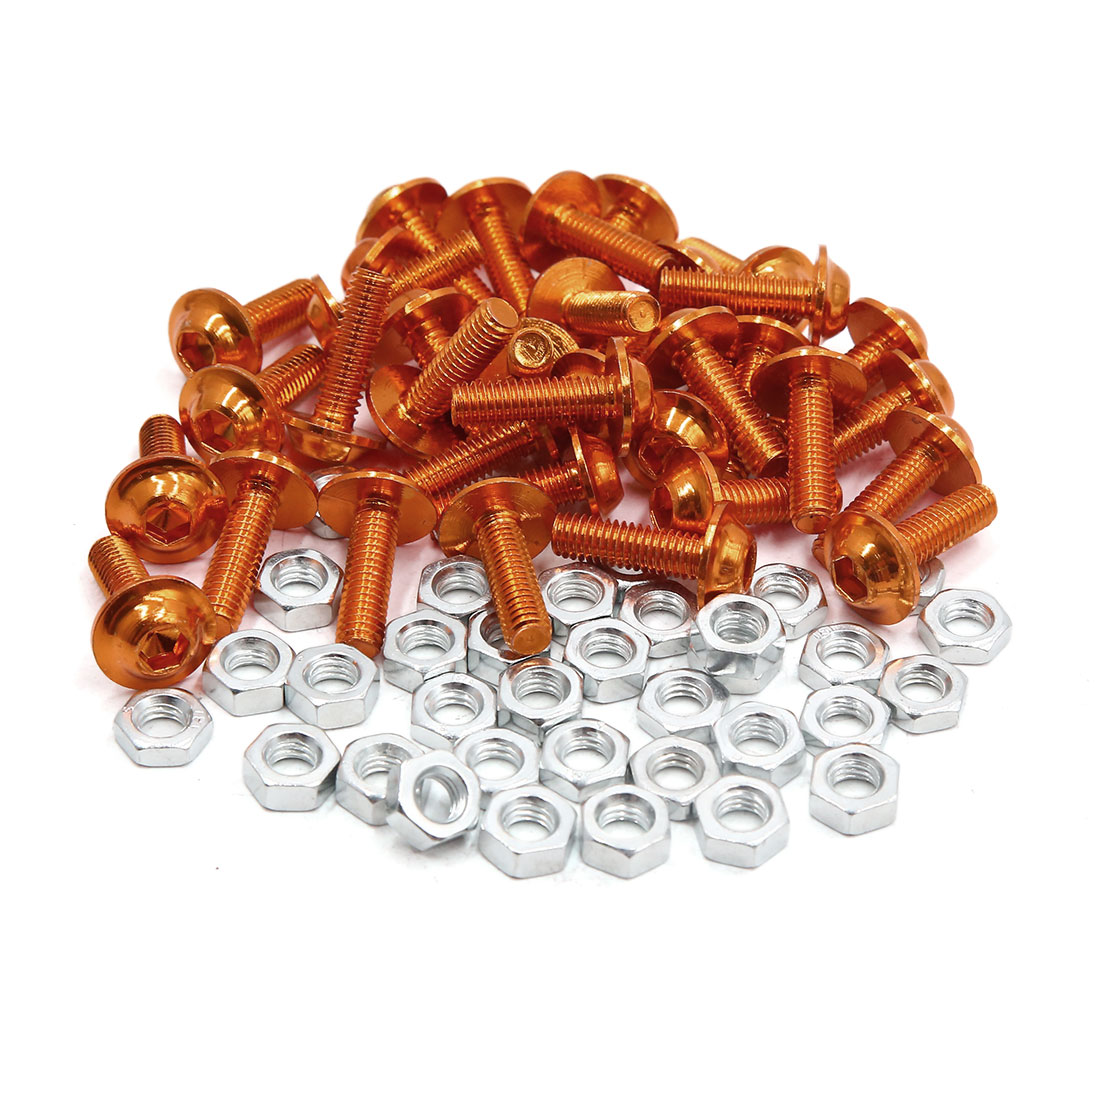 35pcs M6 Orange Aluminum Alloy Hex Socket Head Motorcycle Bolts Screws Nuts